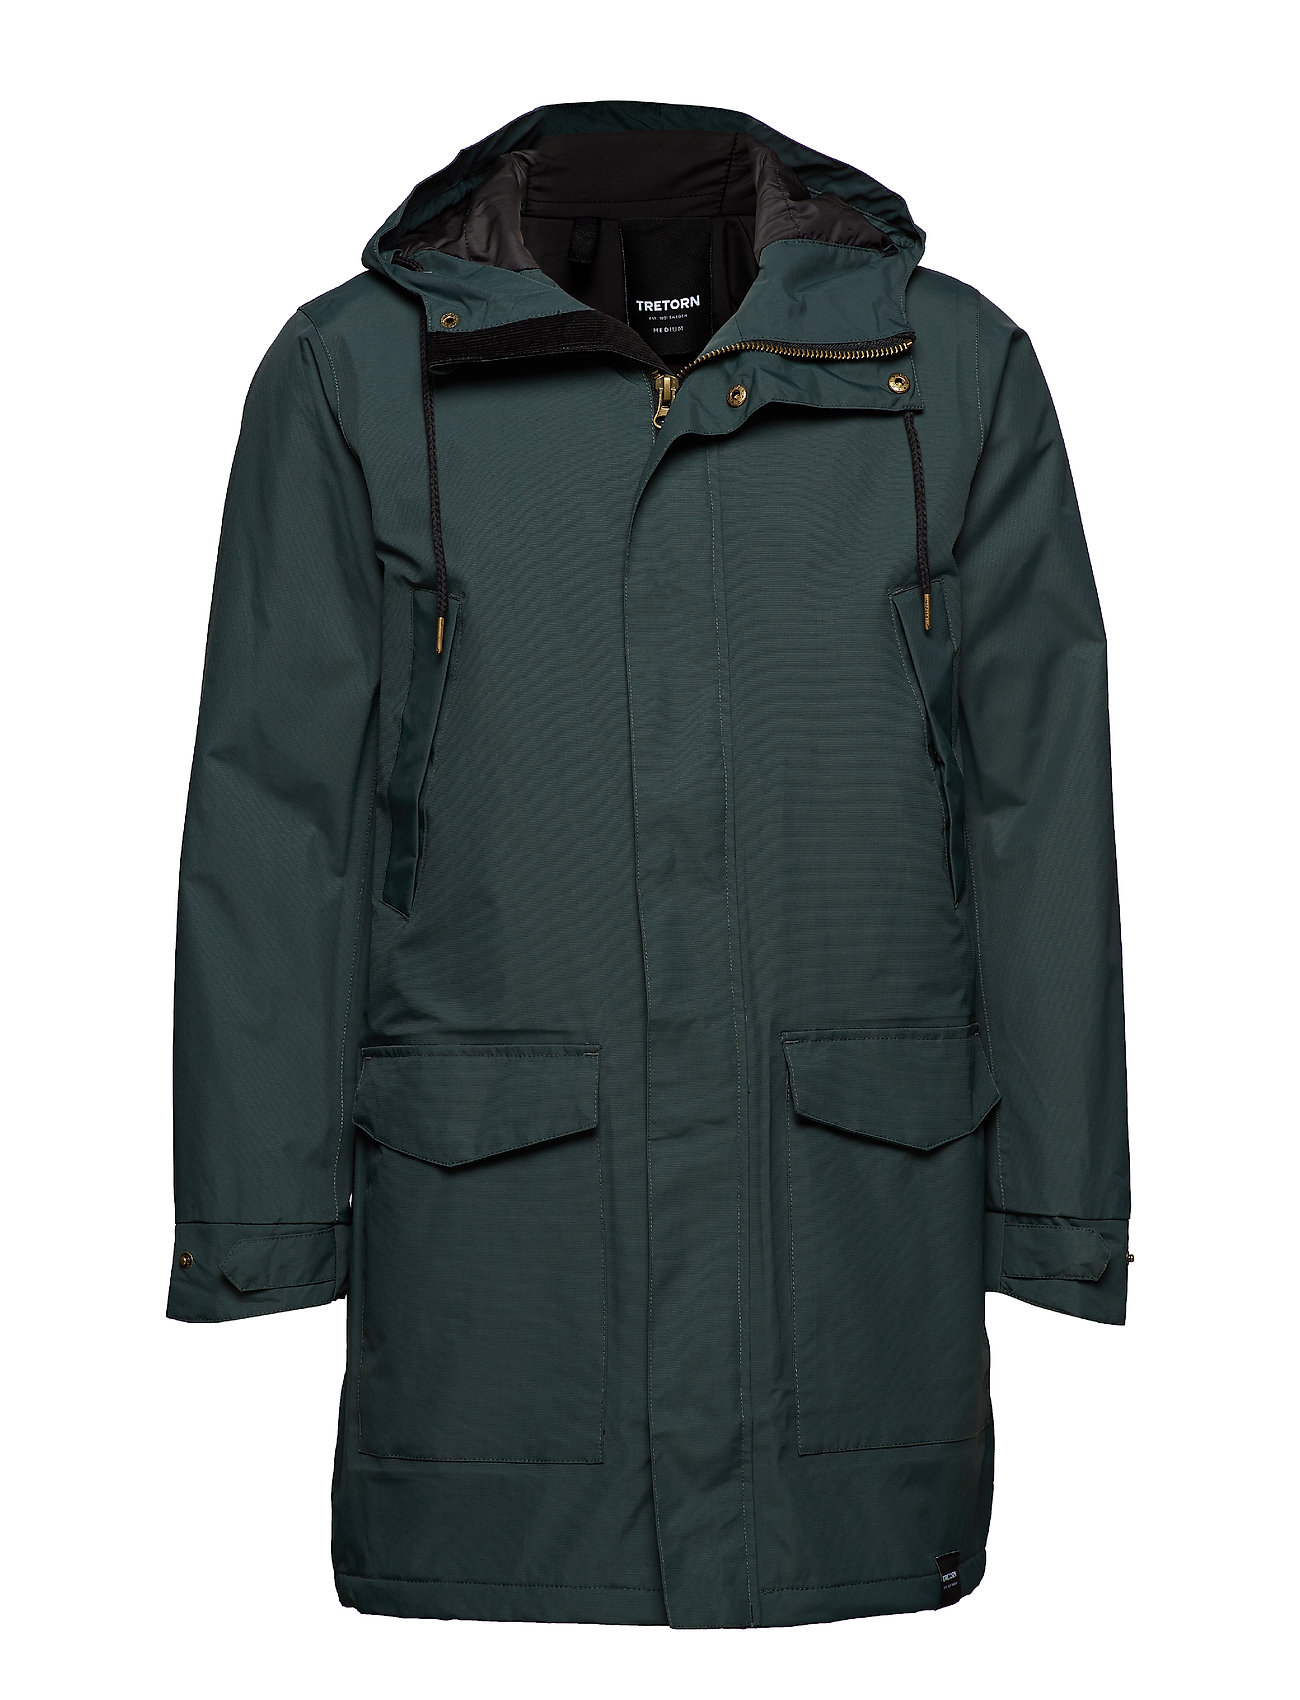 Tretorn RAIN JKT FROM THE SEA PADDED M - 024/KELP GREEN